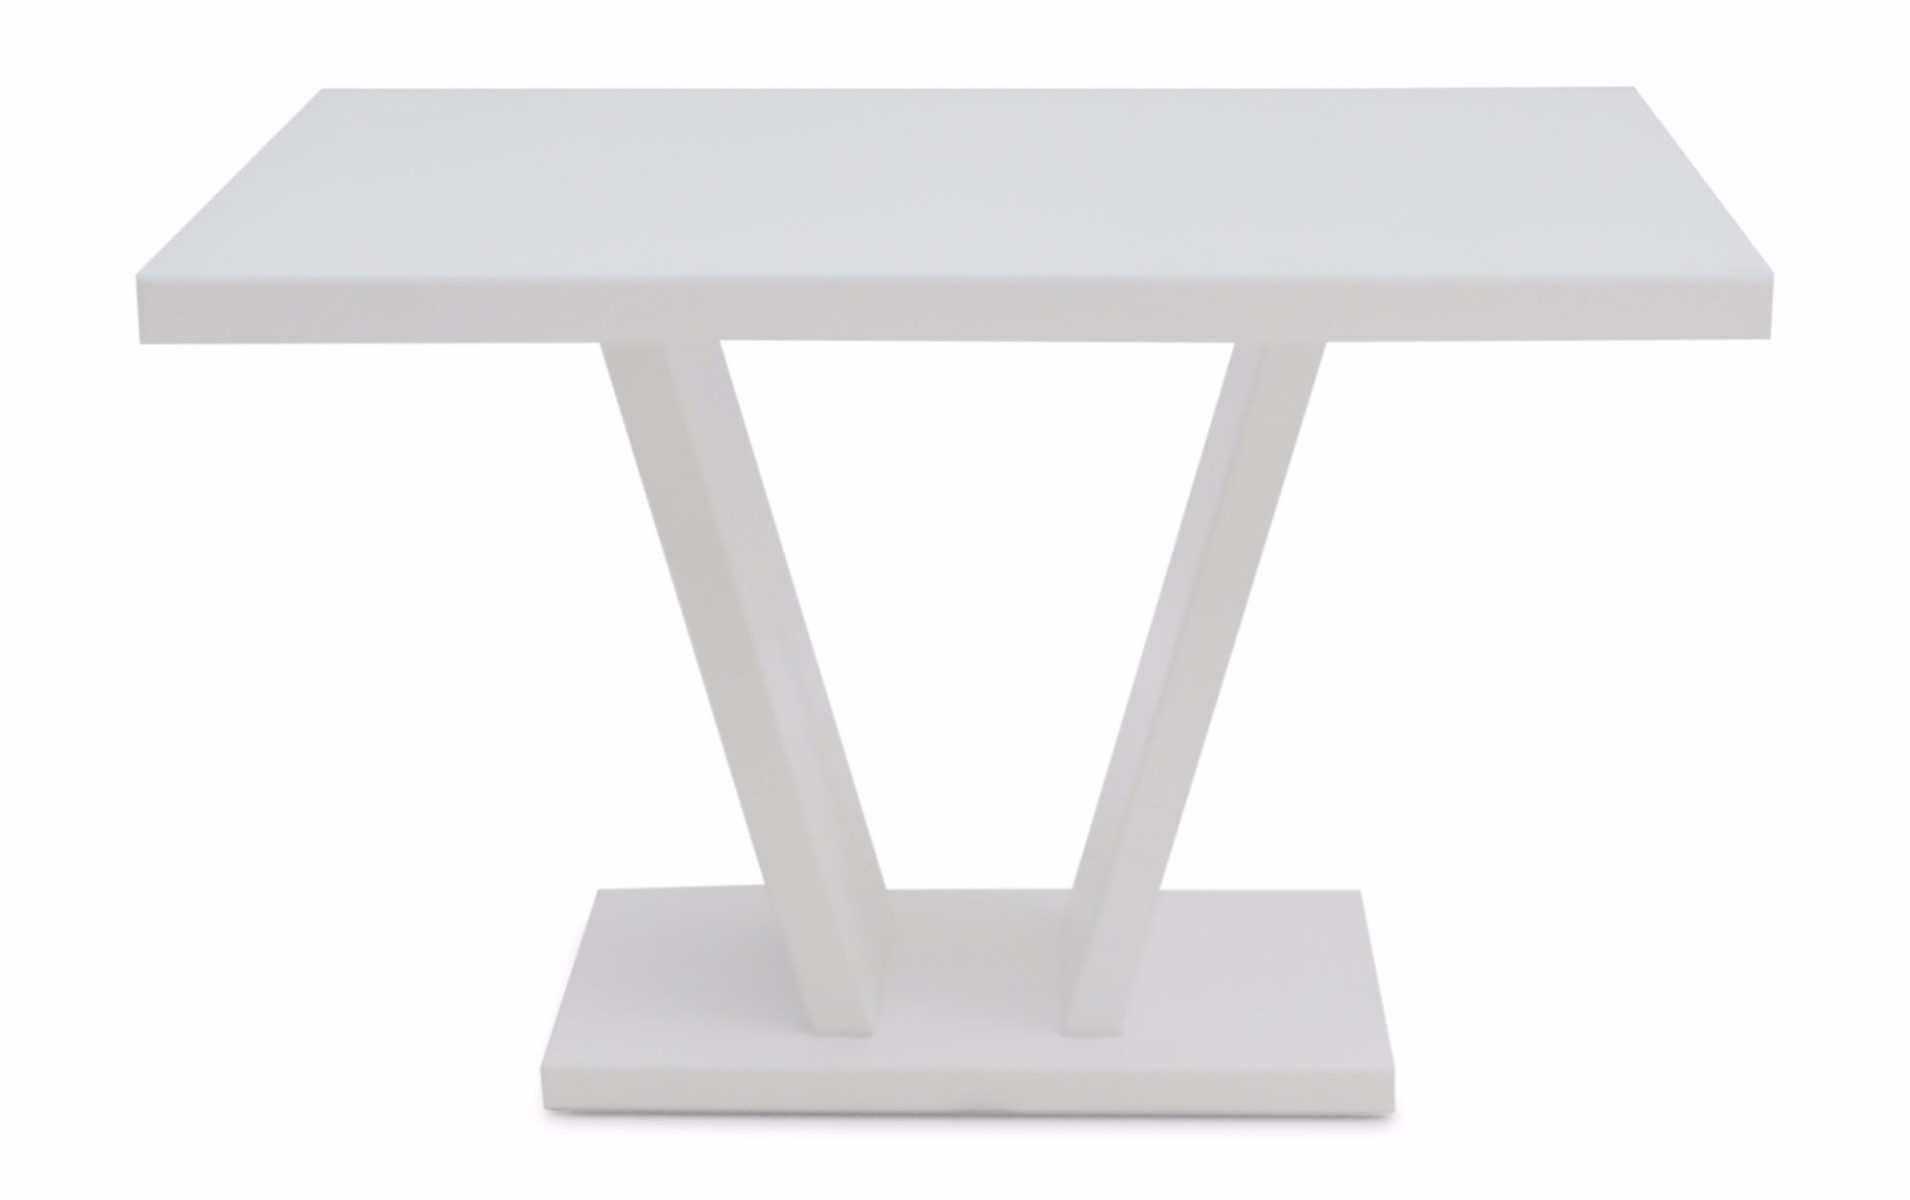 https://www.firstfurniture.co.uk/pub/media/catalog/product/f/a/fairmont_valentino_white_high_gloss_dining_table_1_6.jpg